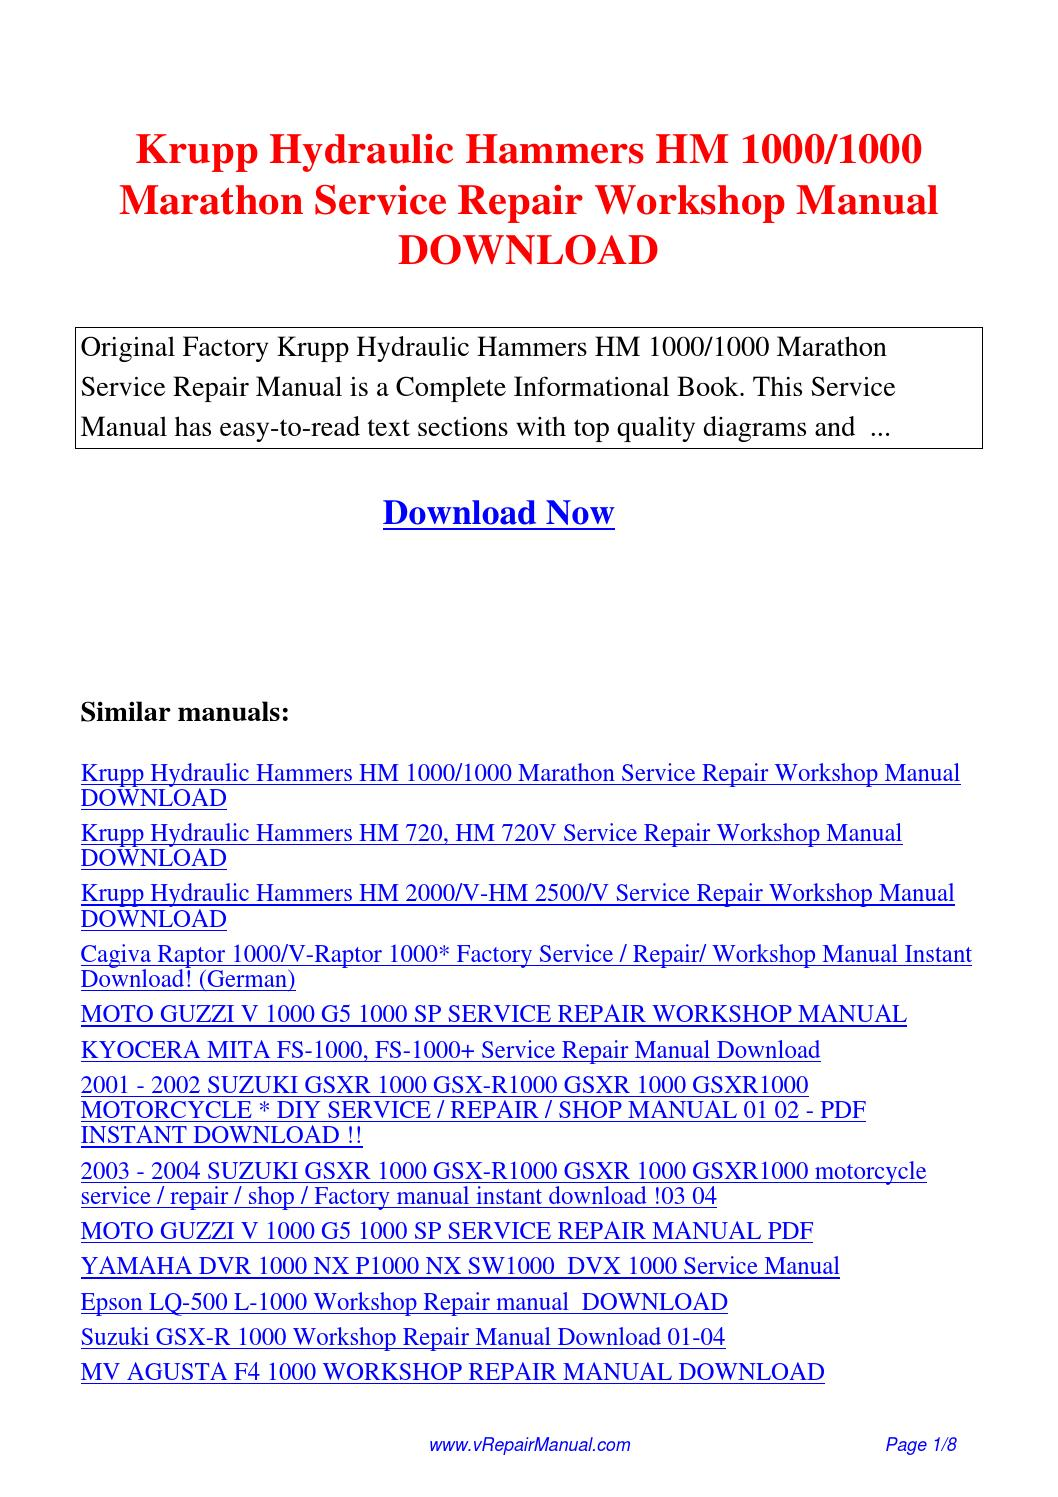 Krupp Hydraulic Hammers HM 1000 1000 Marathon Service Repair Workshop Manual.pdf  by David Zhang - issuu